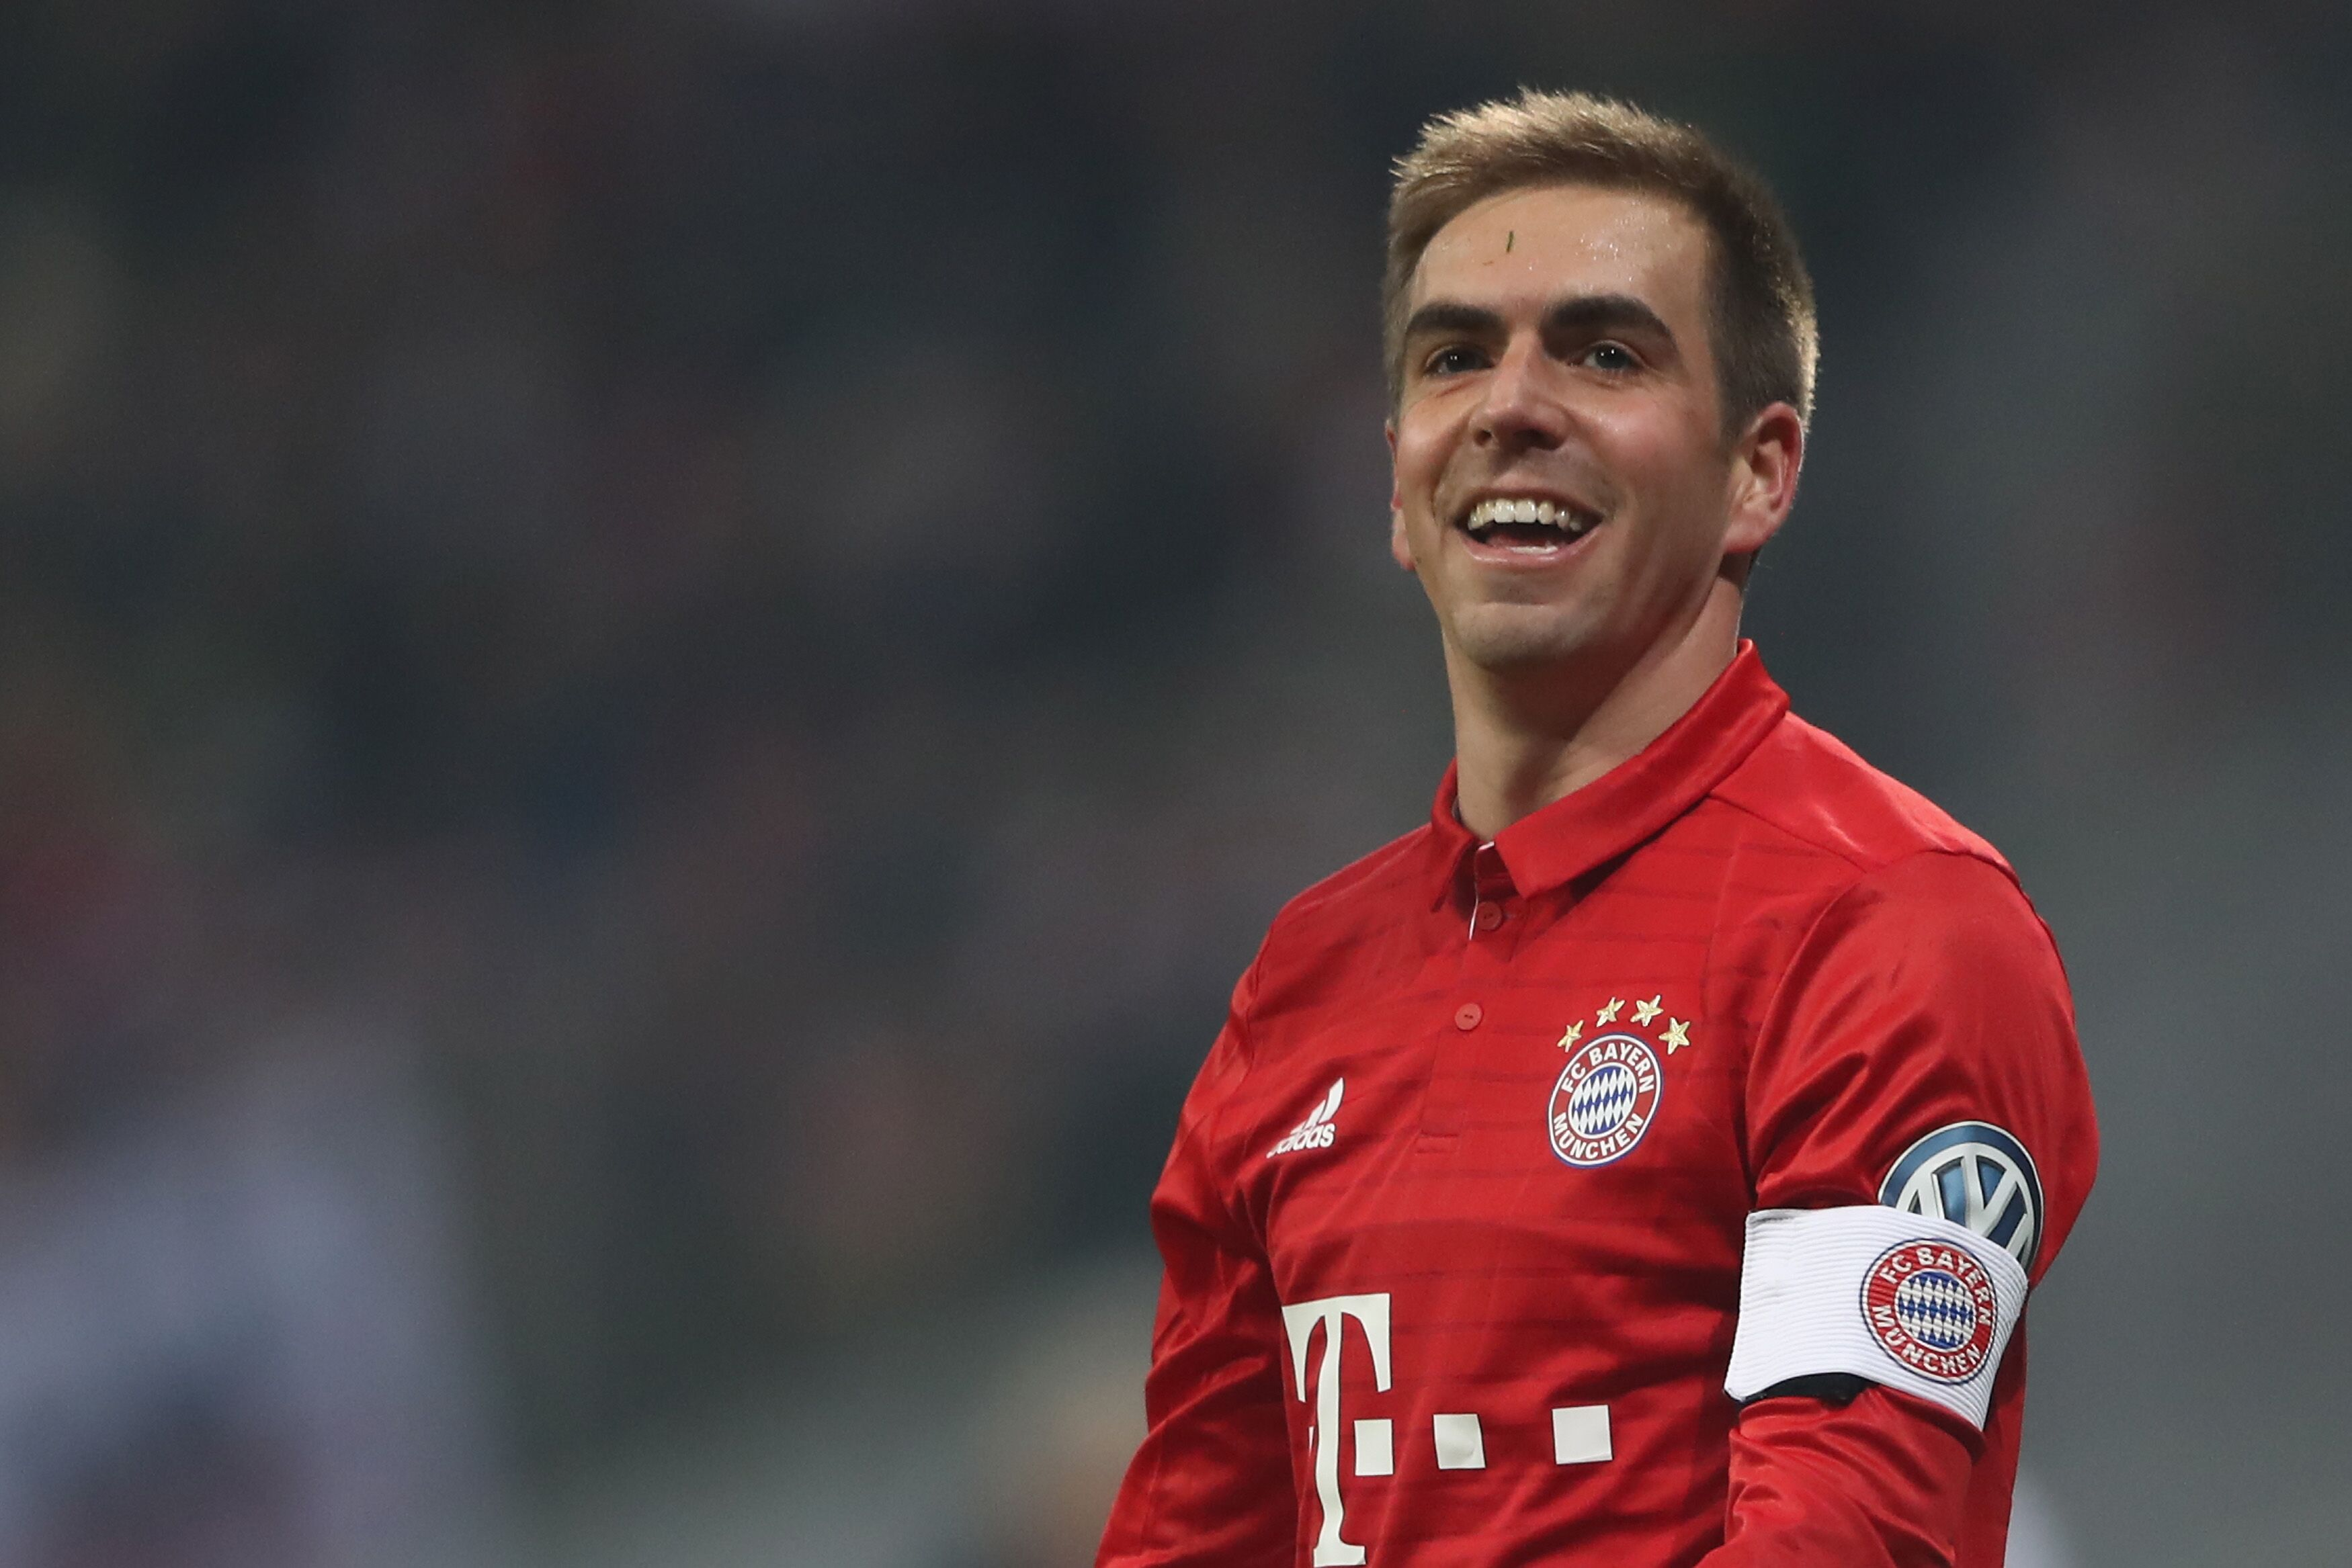 The Euro Preview: Barca still playing catch up, Lahm retirement surprise